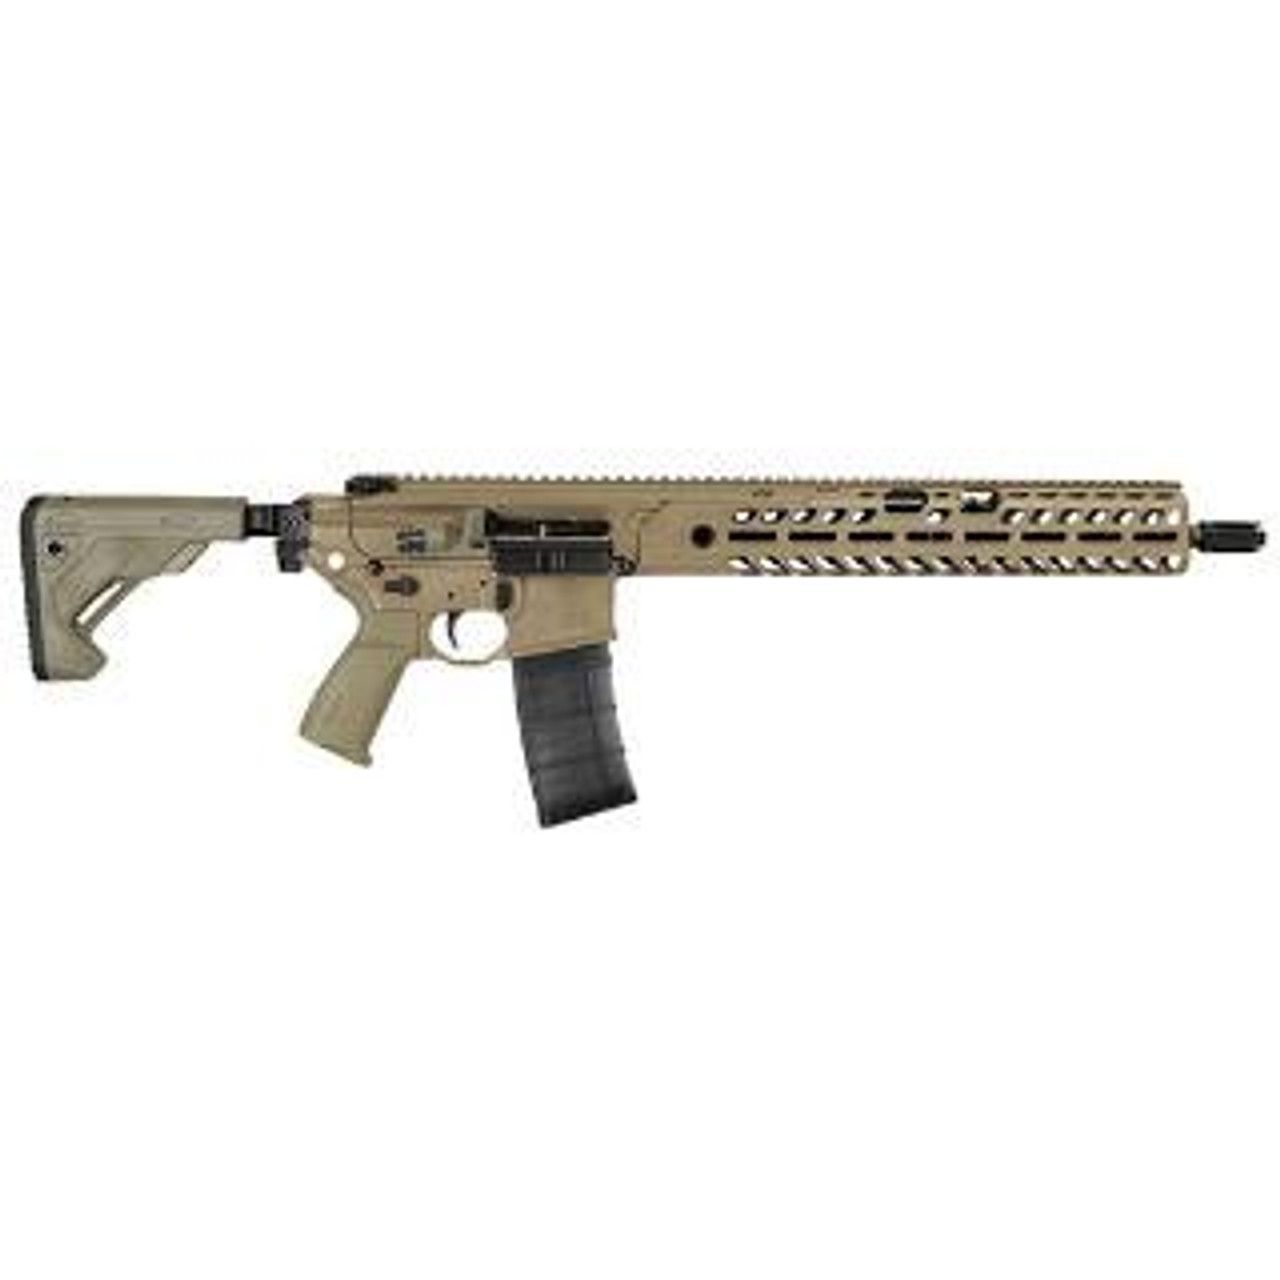 Sig Sauer MCX Virtus Patrol 5.56mm - California Legal- FDE